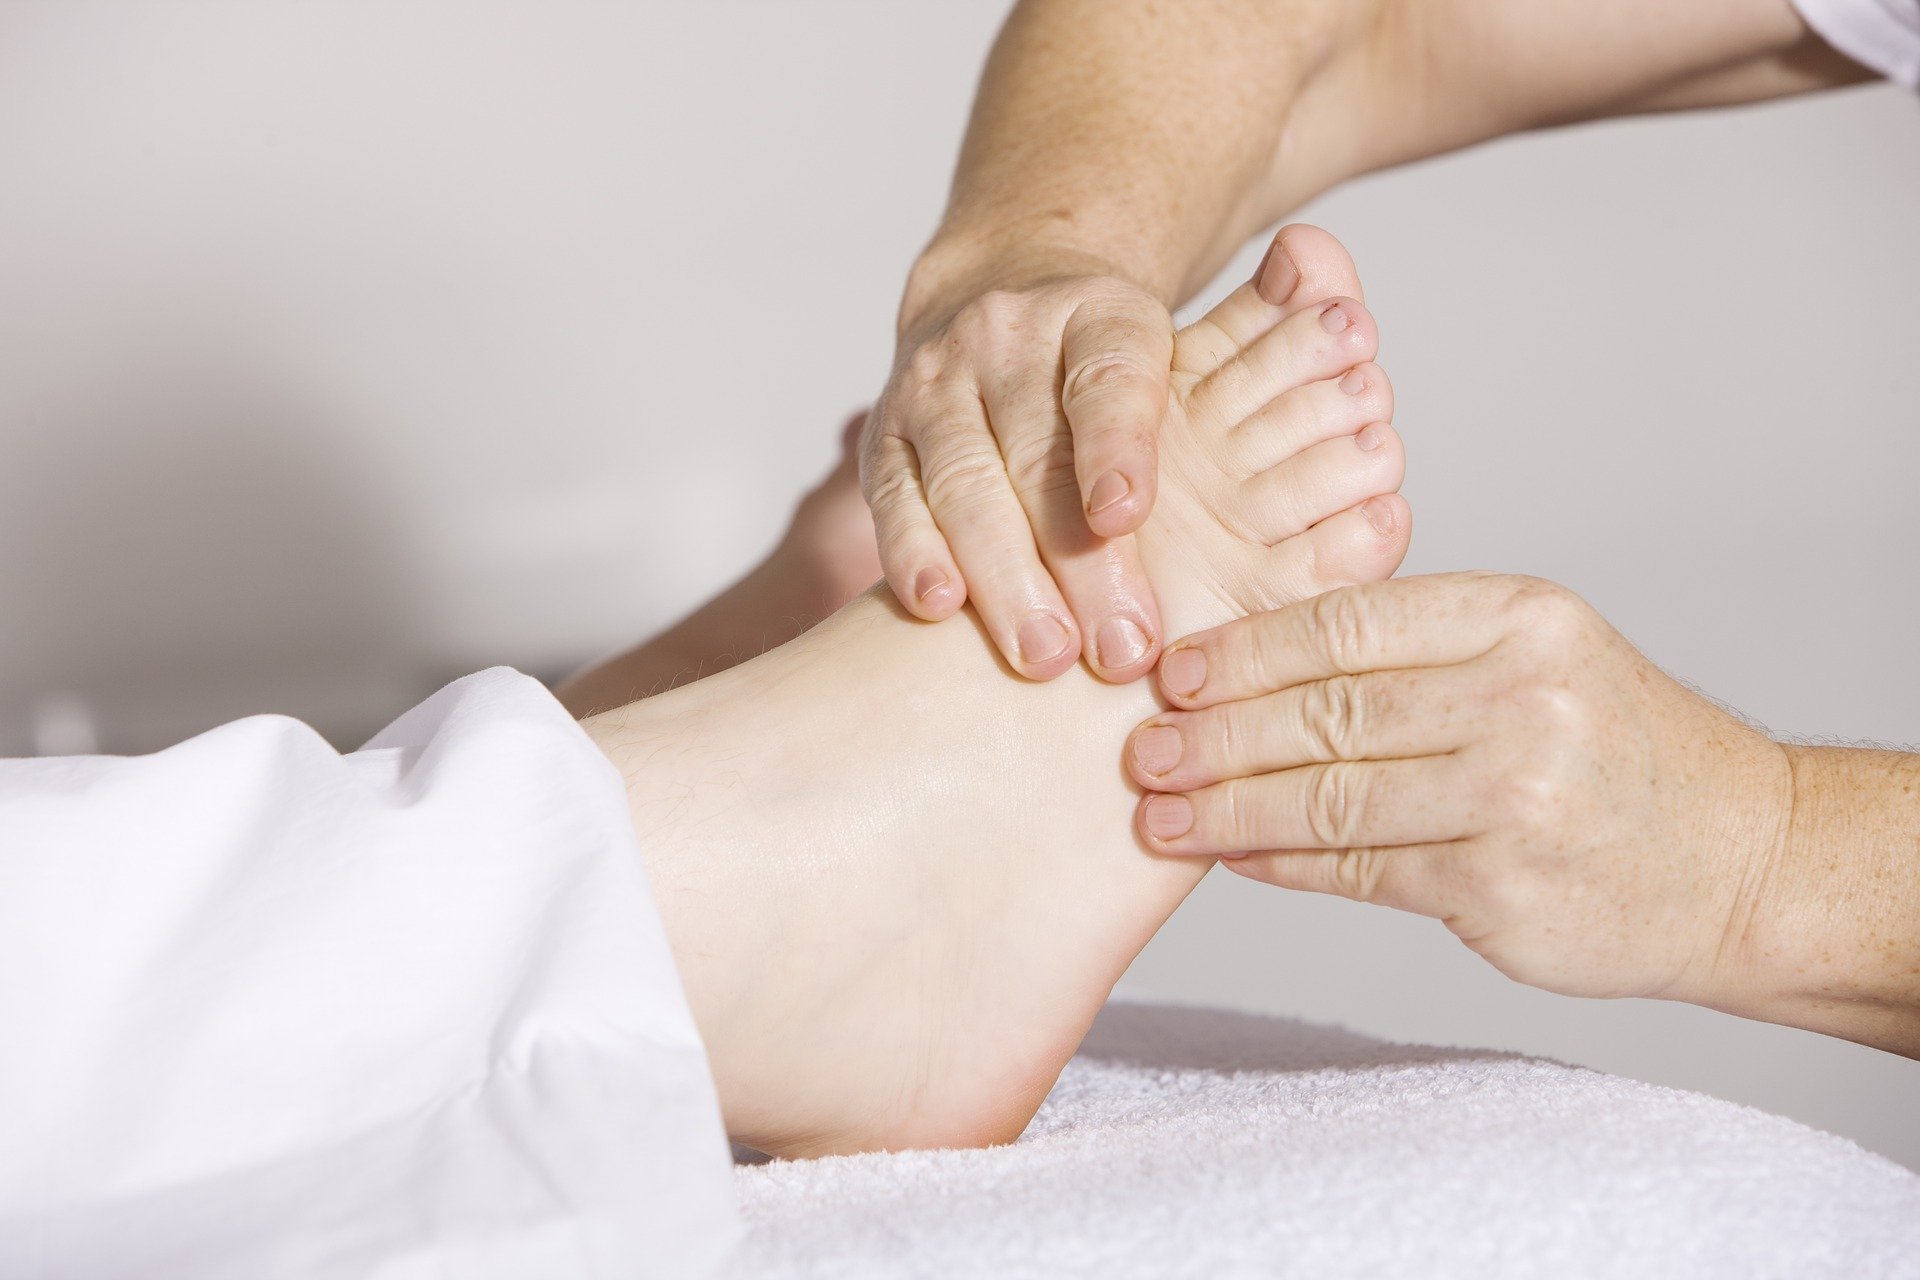 physiotherapy-2133286_1920.jpg